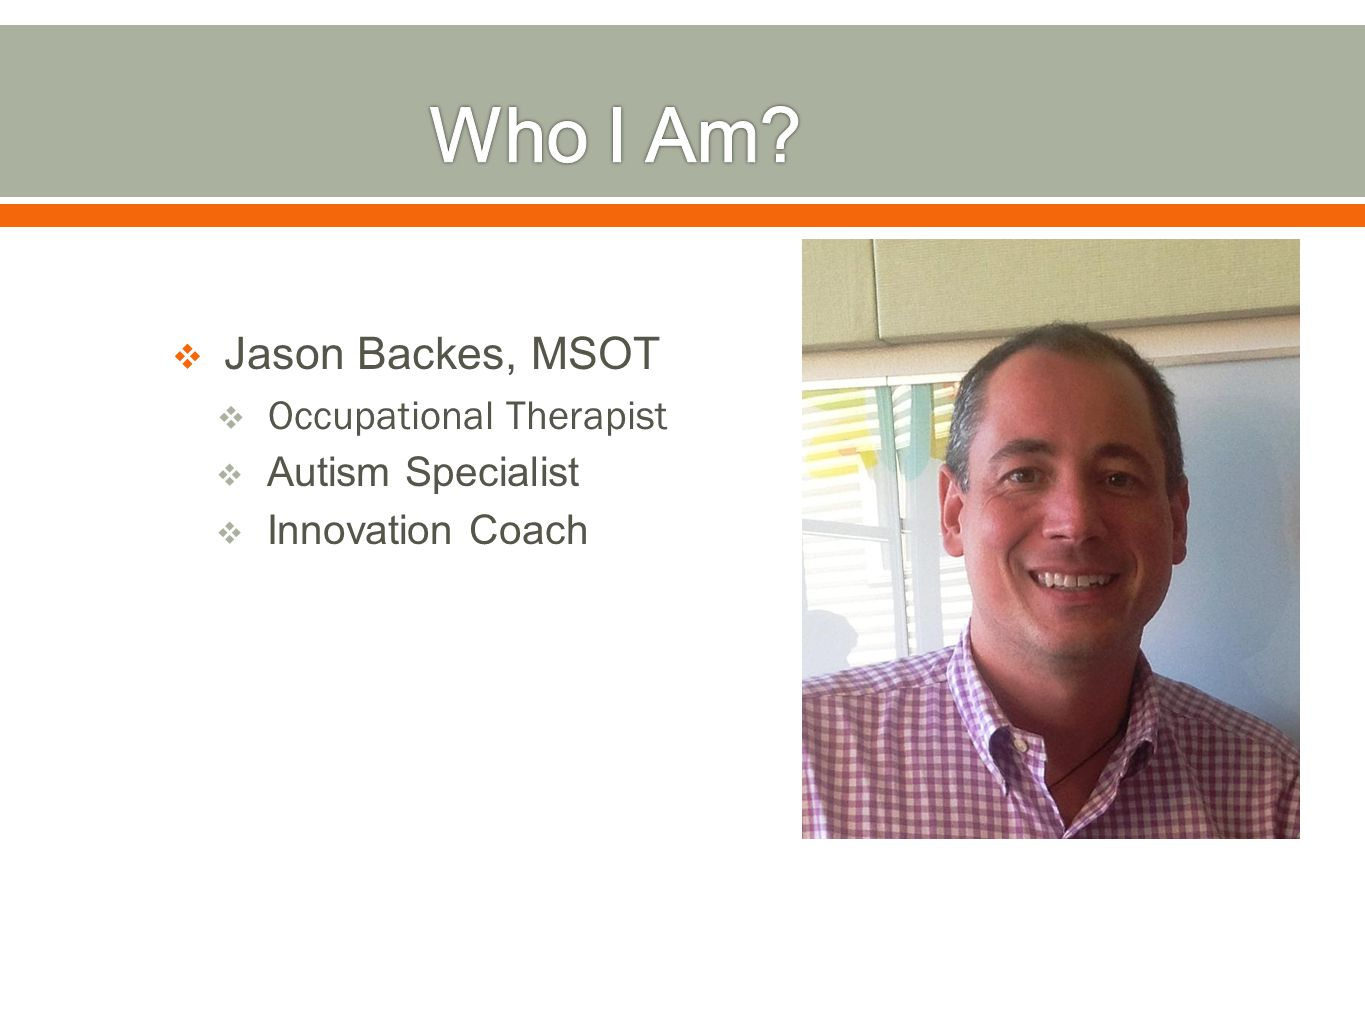  Jason Backes, MSOT  Occupational Therapist  Autism Specialist  Innovation Coach